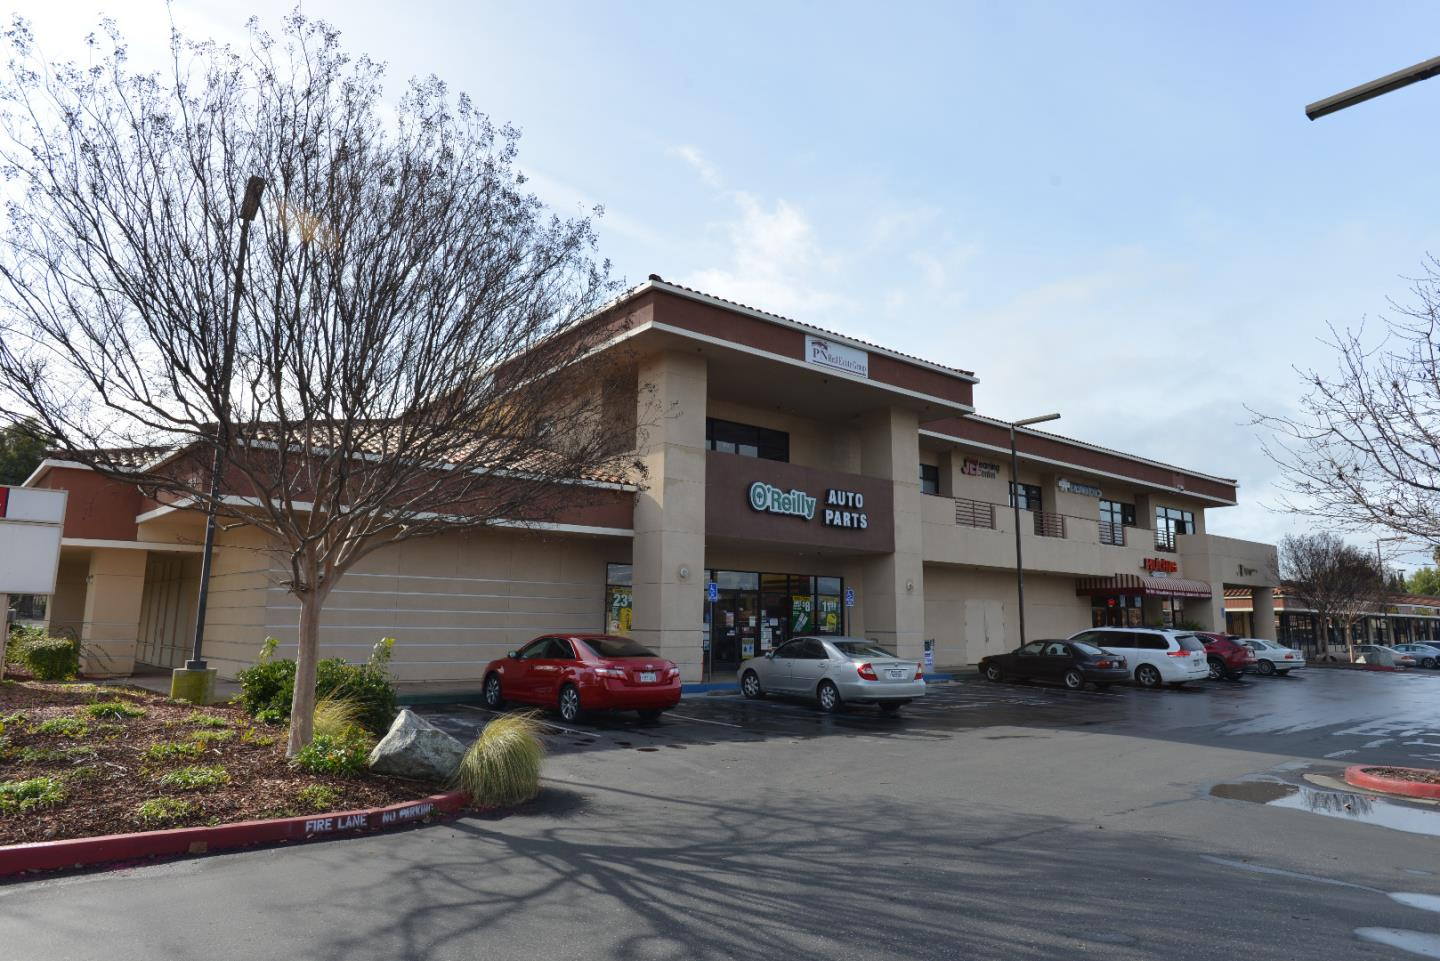 Commercial للـ Sale في 2850 Quimby Road 2850 Quimby Road San Jose, California 95148 United States